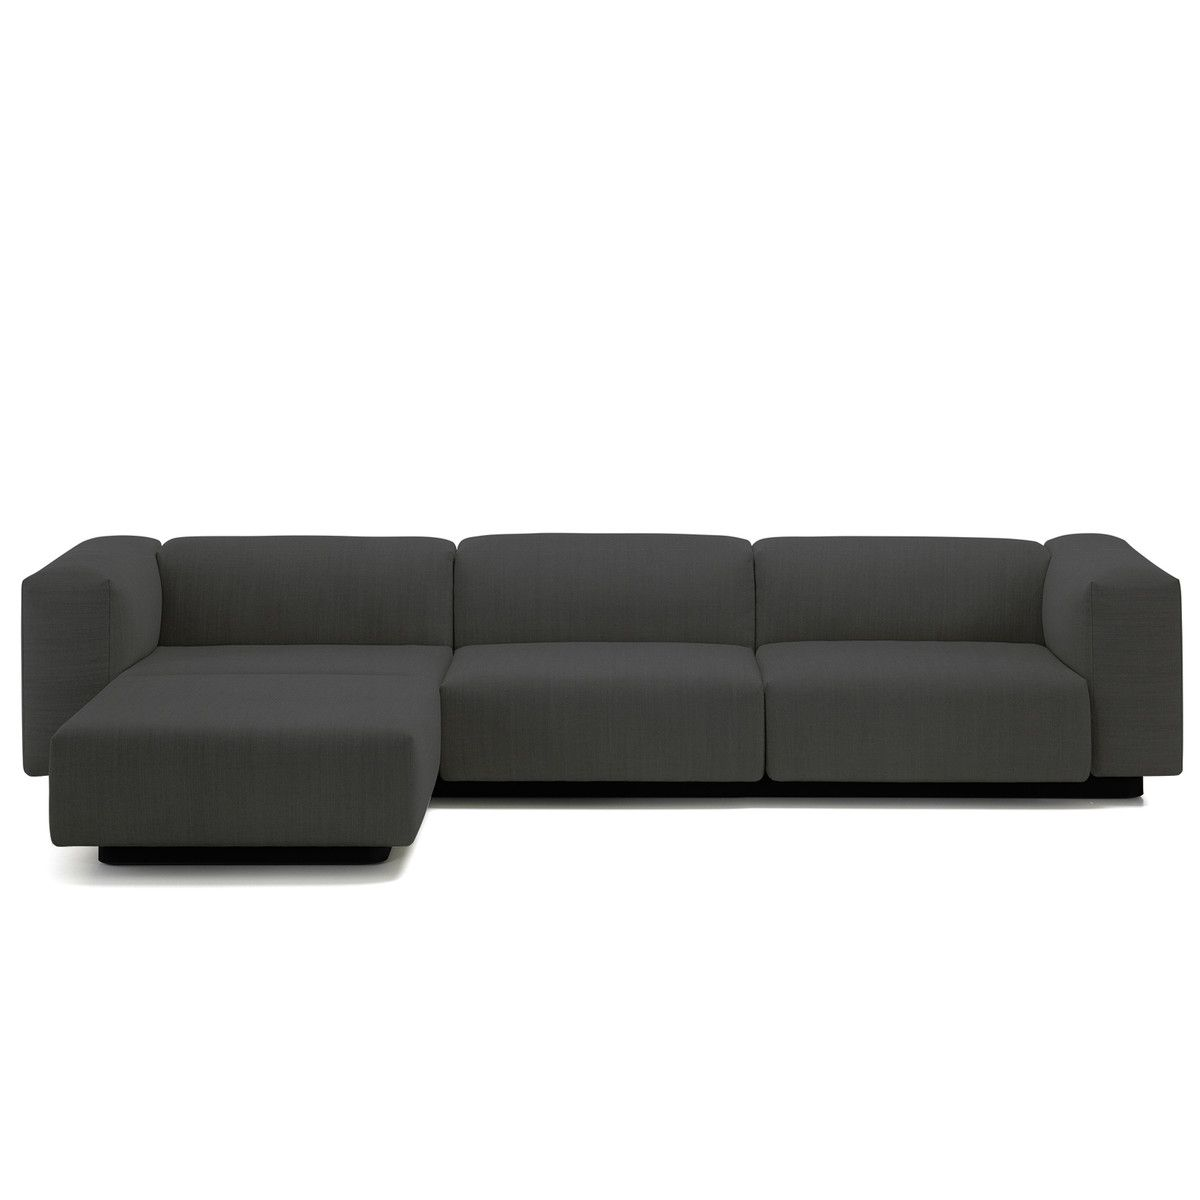 Schlafsofas Vitra Vitra Soft Modular Sofa 3 Sitzer Mit Chaiselongue Links